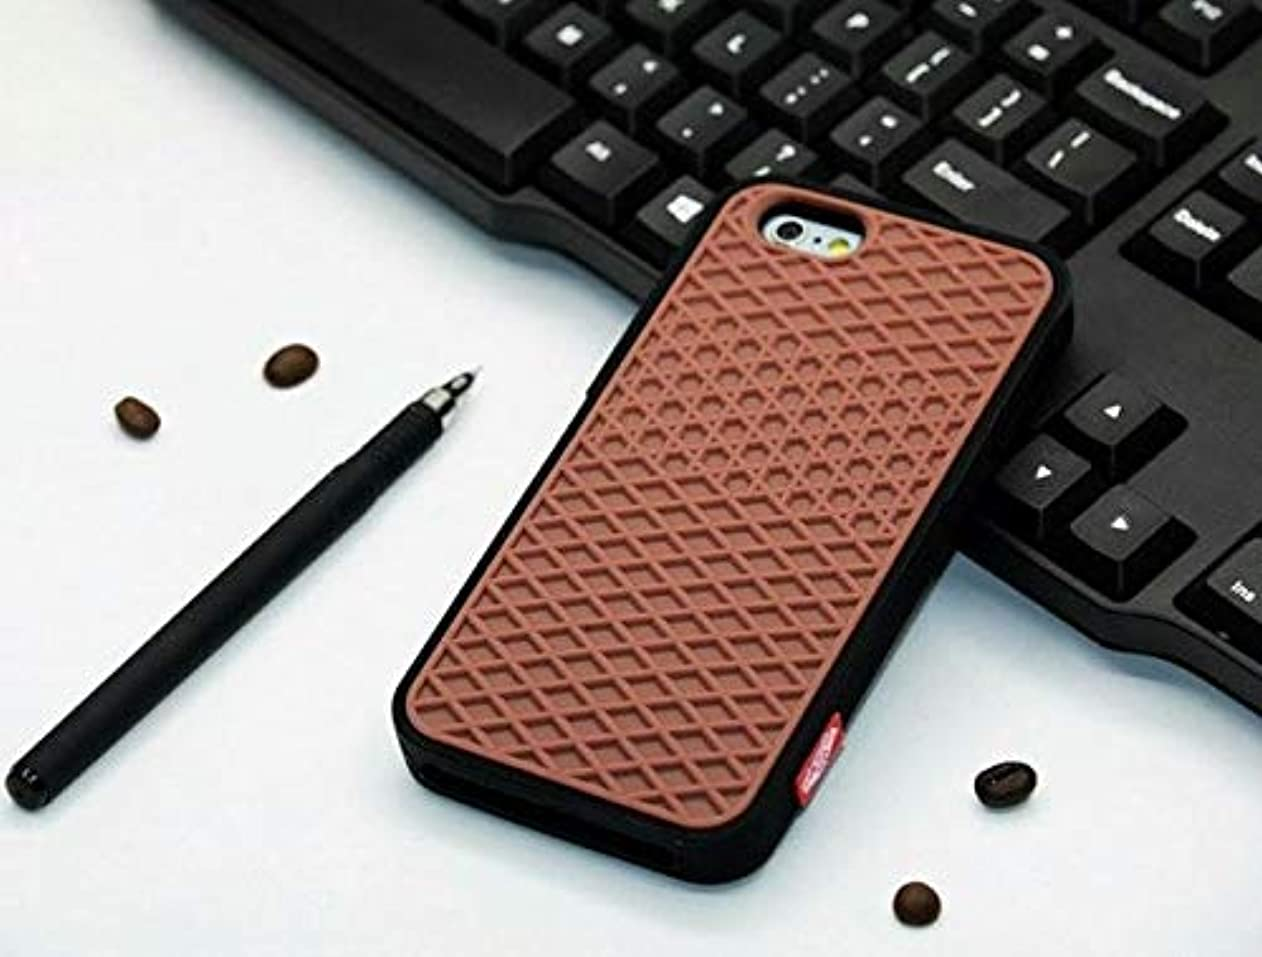 EPENA Vans Waffle Case for iPhone X XS 5 5s SE Cover Soft Rubber Waffle Shoe Sole Silicone Back Cover for iPhone 8 7 6 6S Plus - (Color: Brown with Black, Material: for iPhone X) phrlmvfcrnq24027